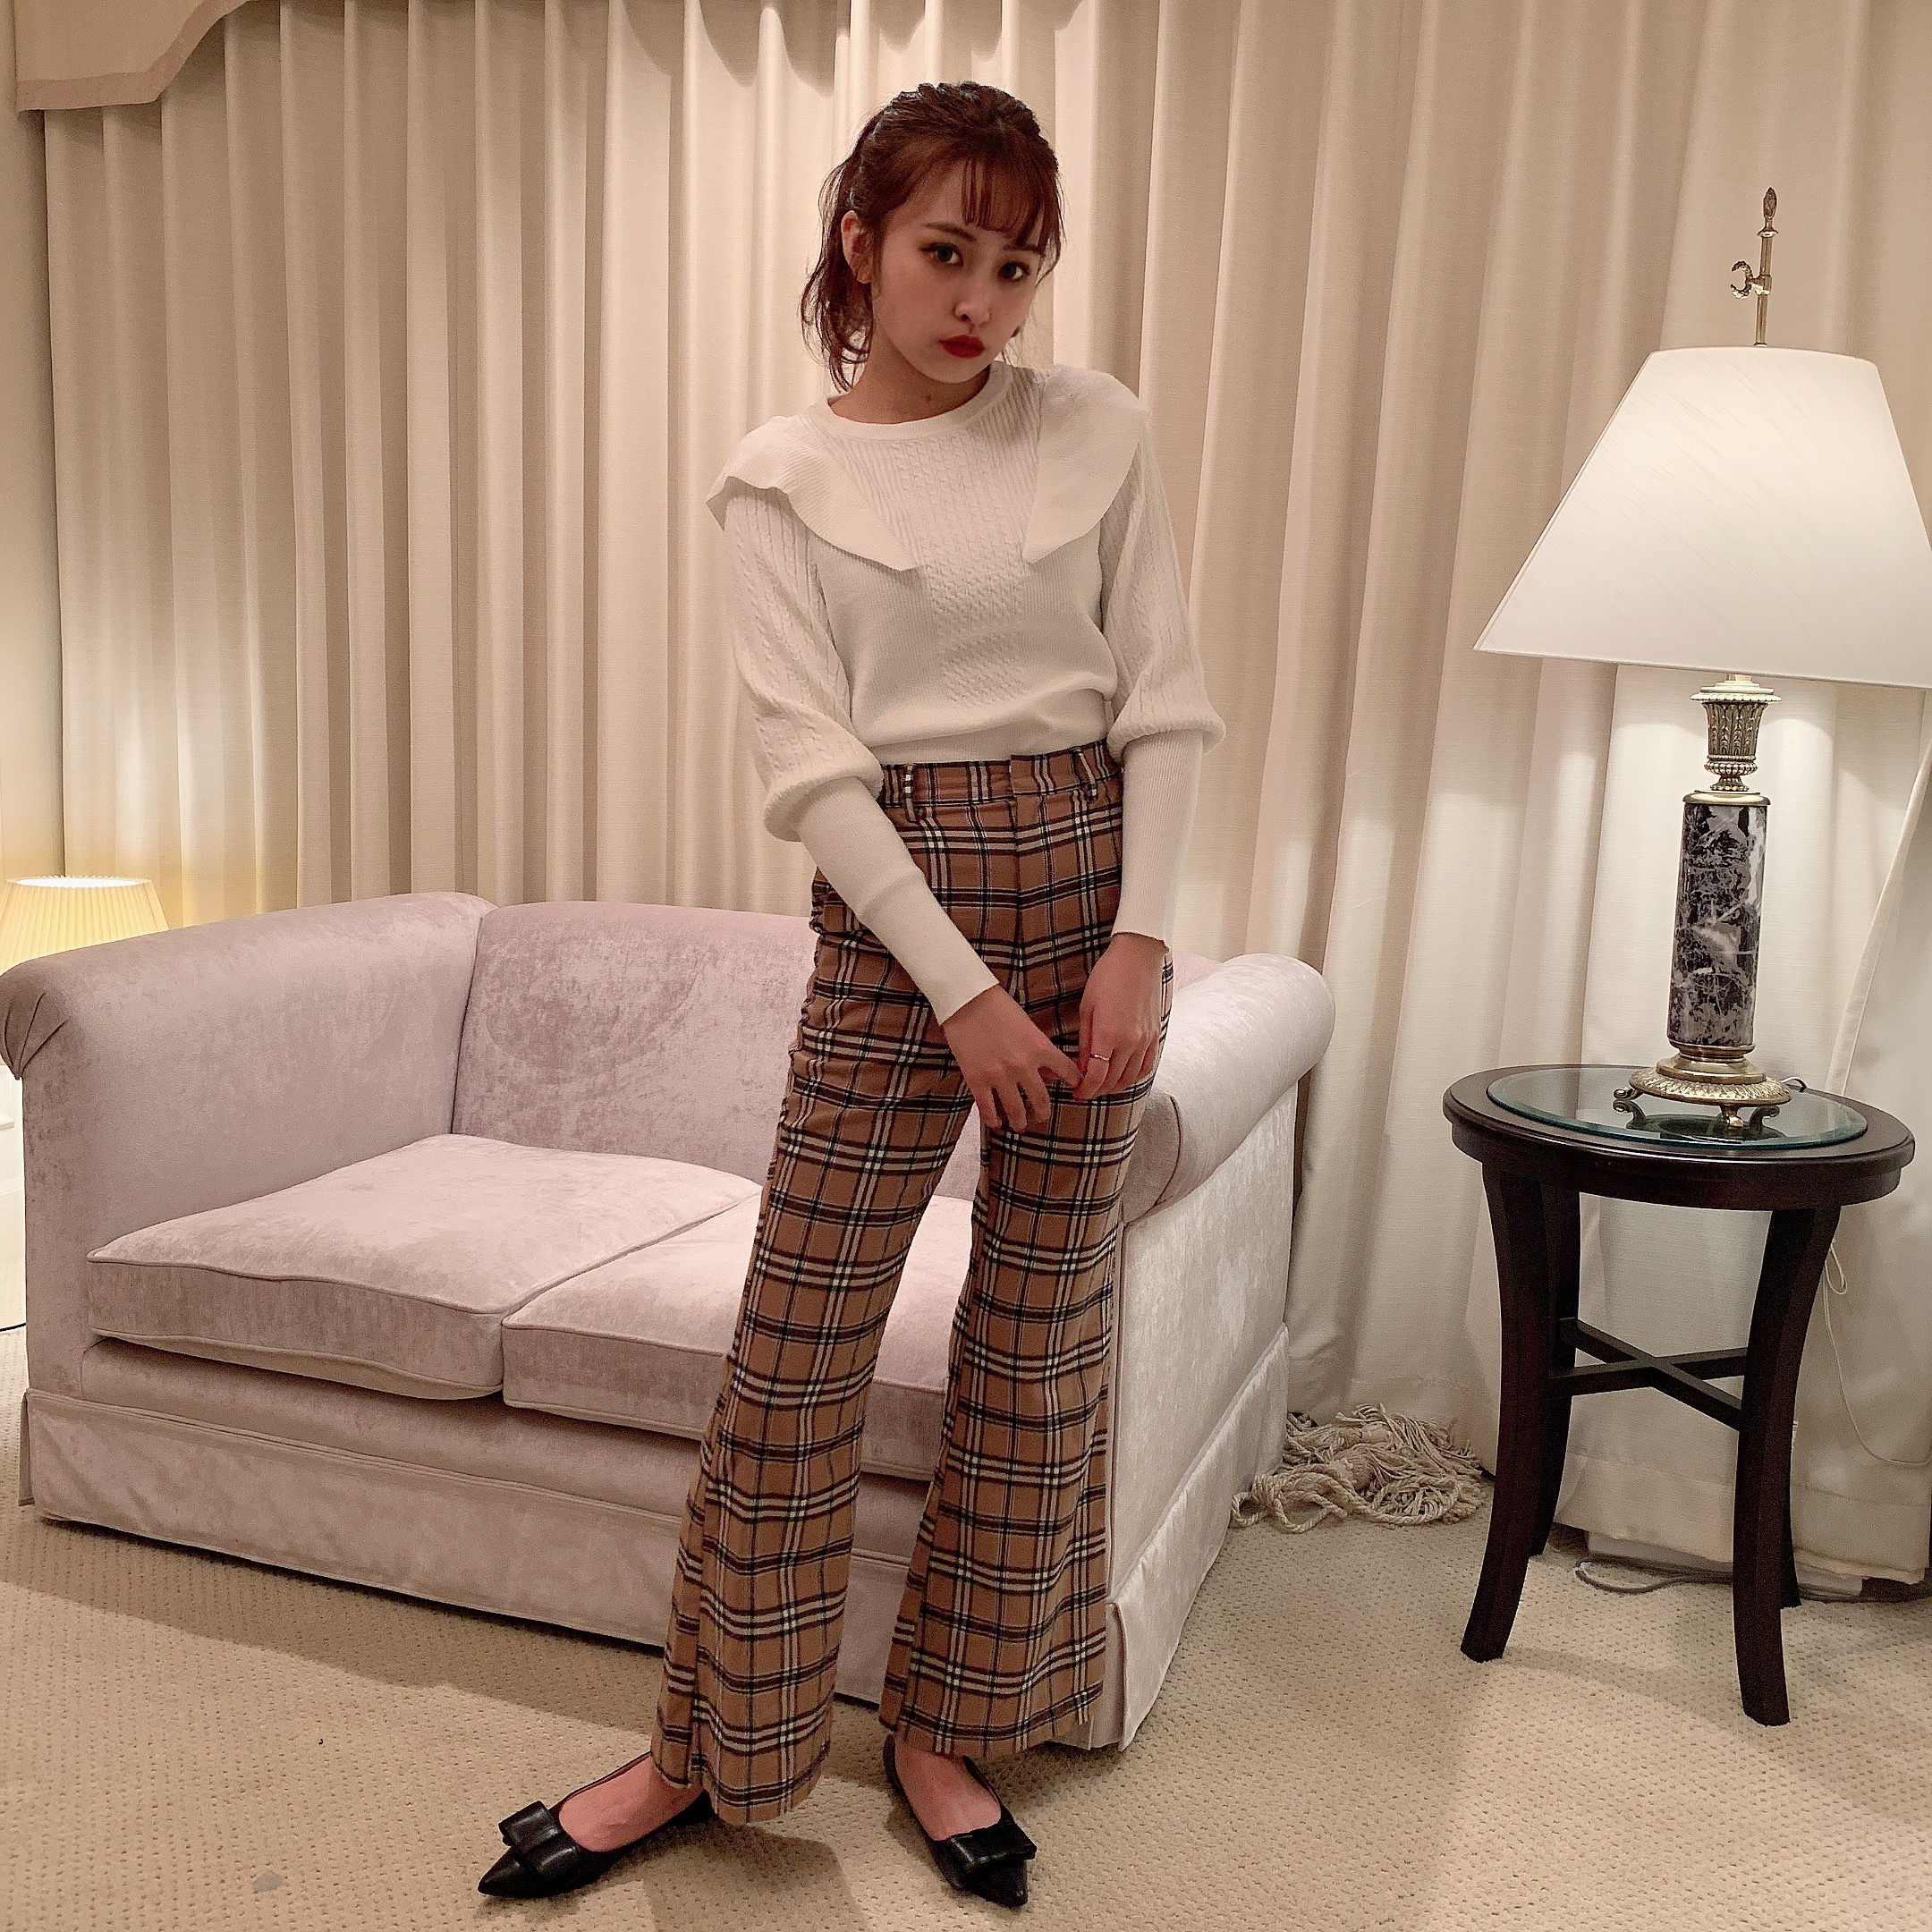 wing knit